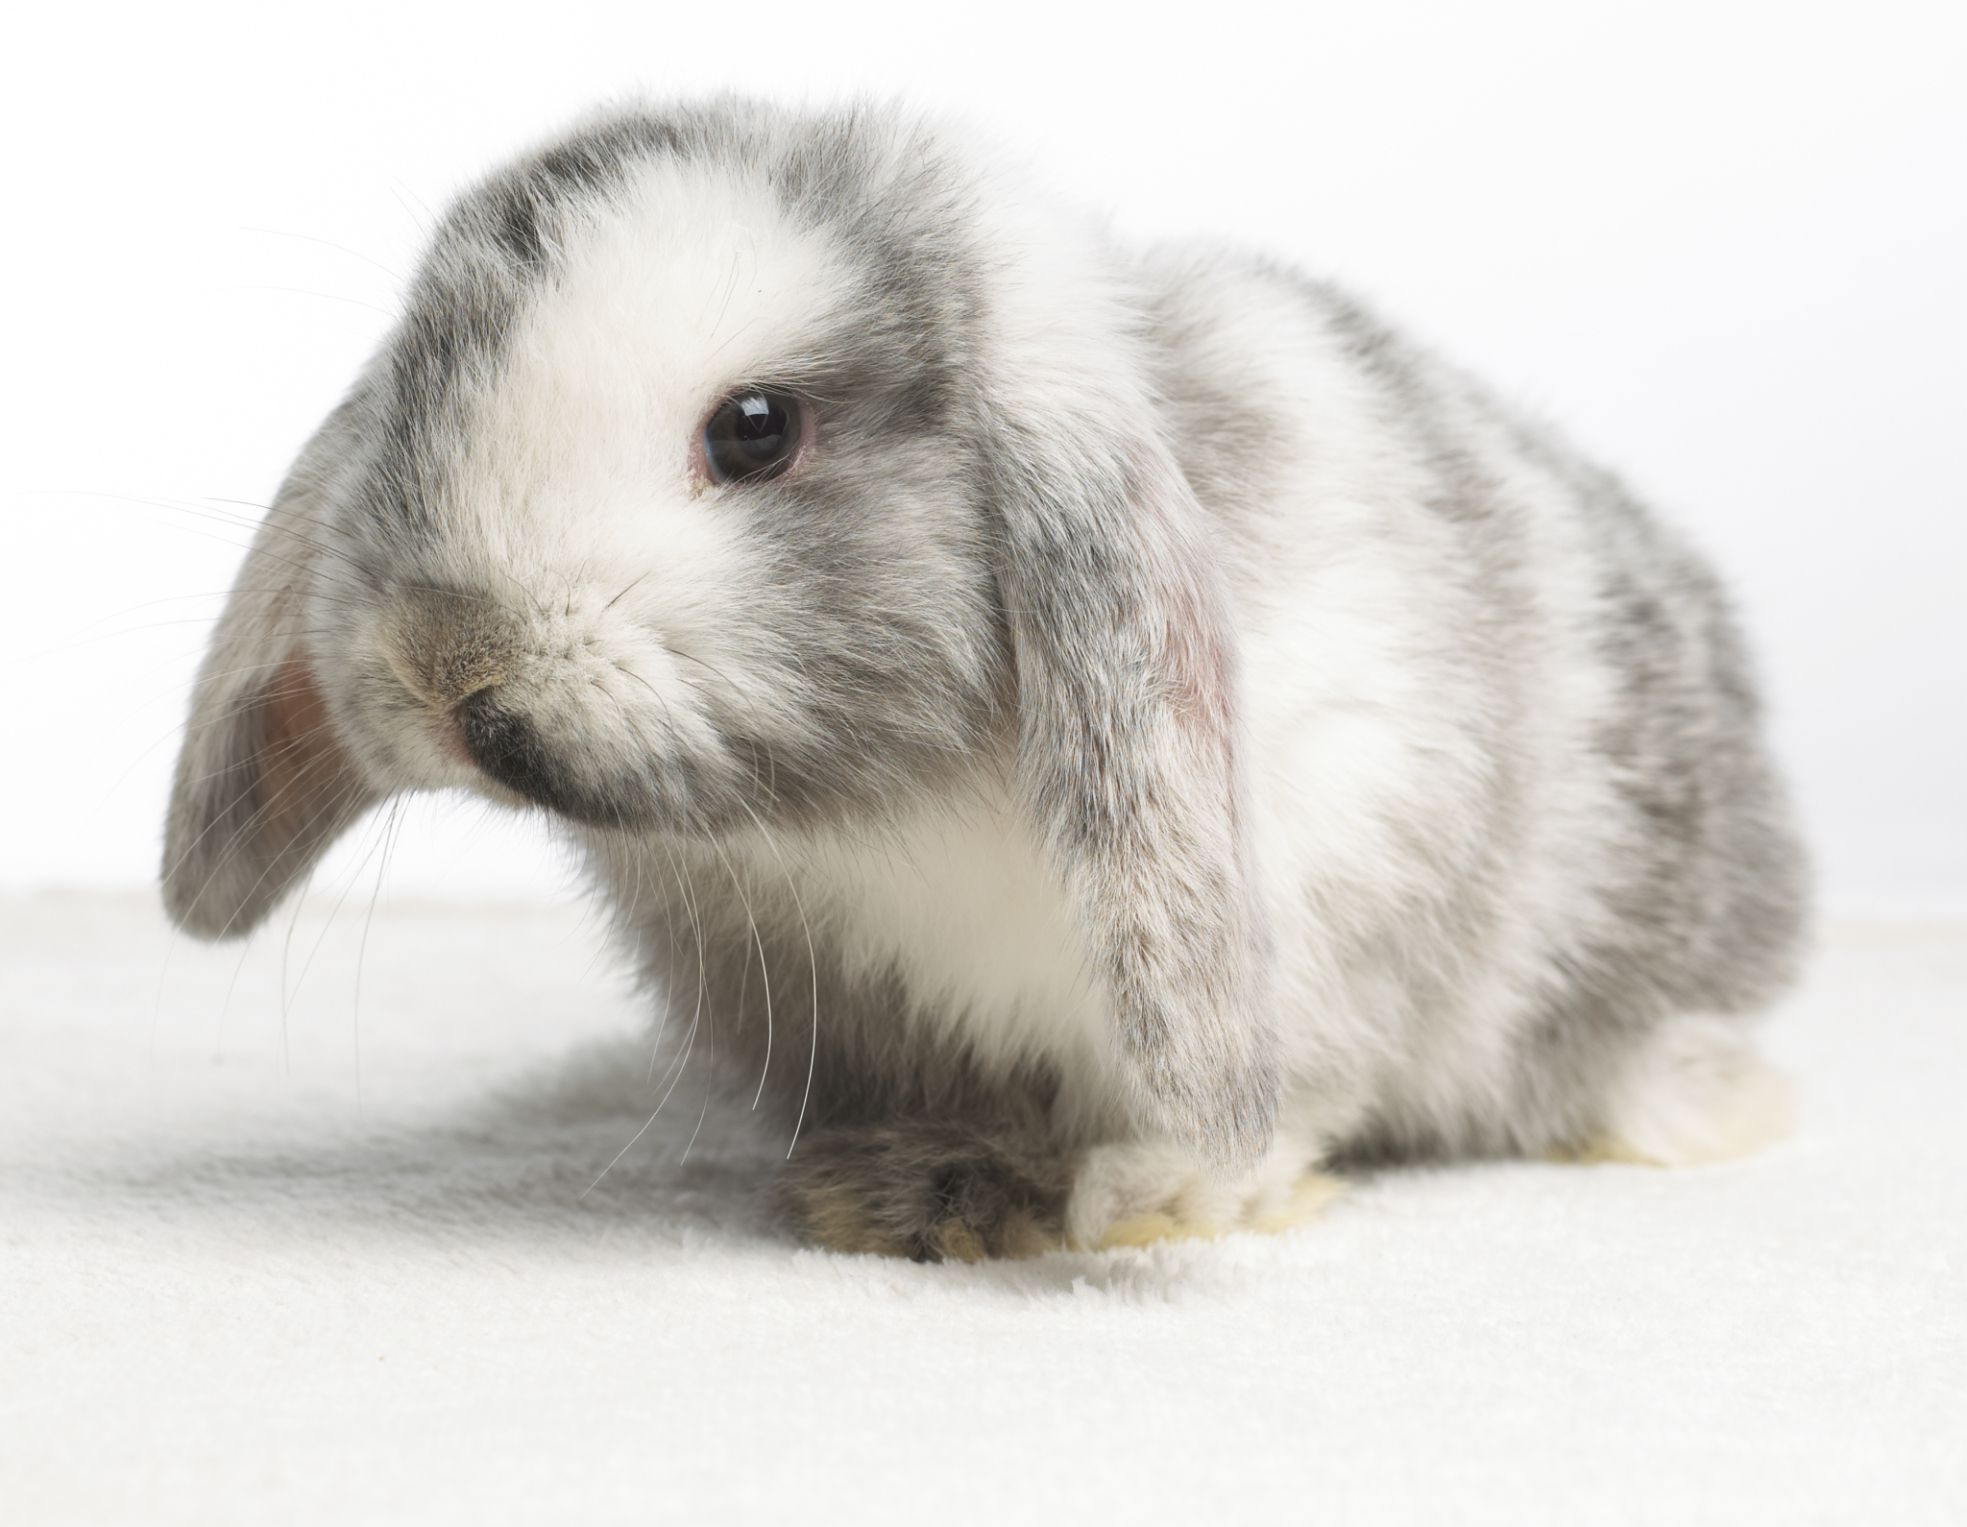 Names for Pet Rabbits That Start With A